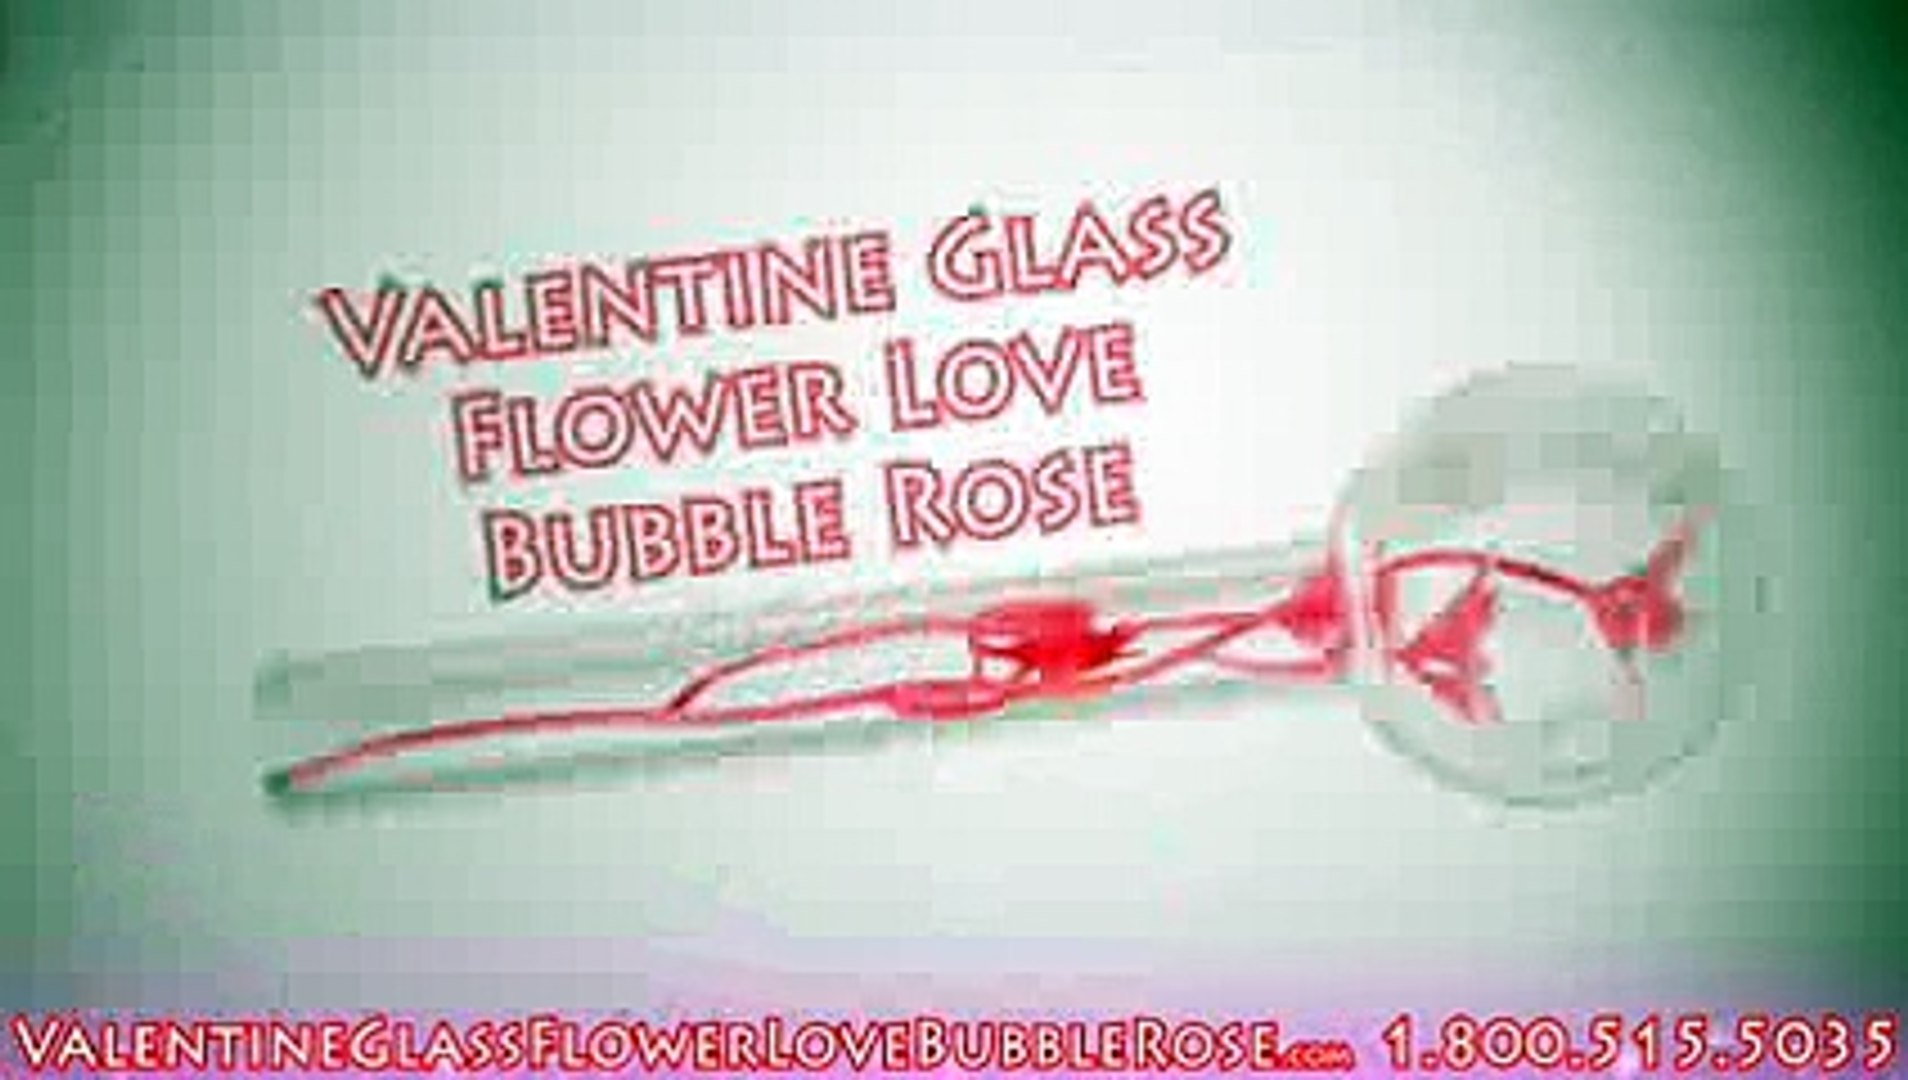 Valentine Rose Glass Pipe - Efficient Straight Shooter Valentine Rose Pipe with faux Rose Inside! 1.